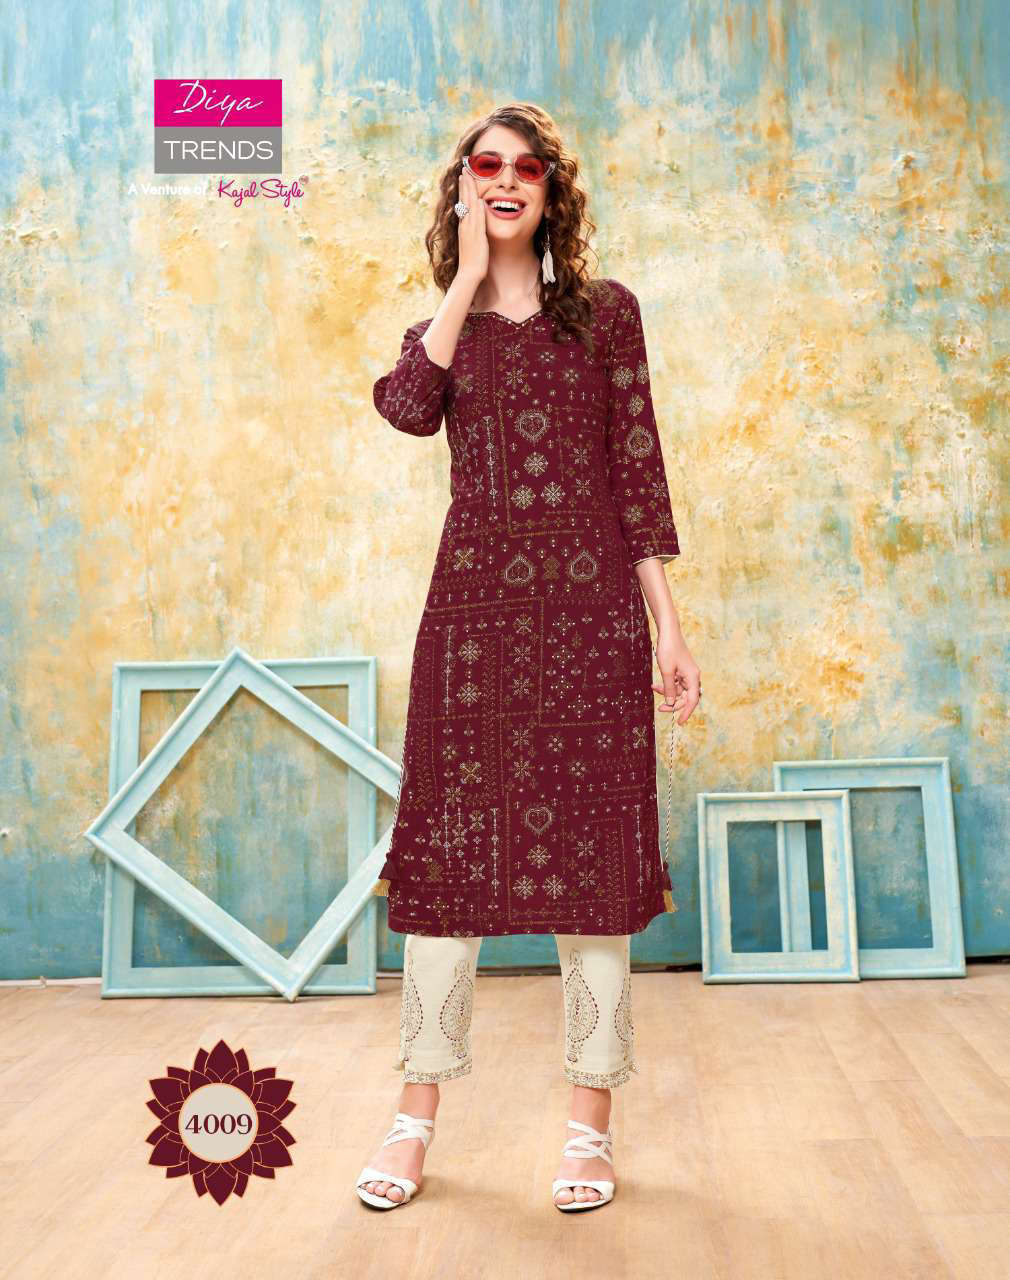 Diya Trends Forever Vol 4 by Kajal Style Kurti with Pant Wholesale Catalog 12 Pcs 10 - Diya Trends Forever Vol 4 by Kajal Style Kurti with Pant Wholesale Catalog 12 Pcs